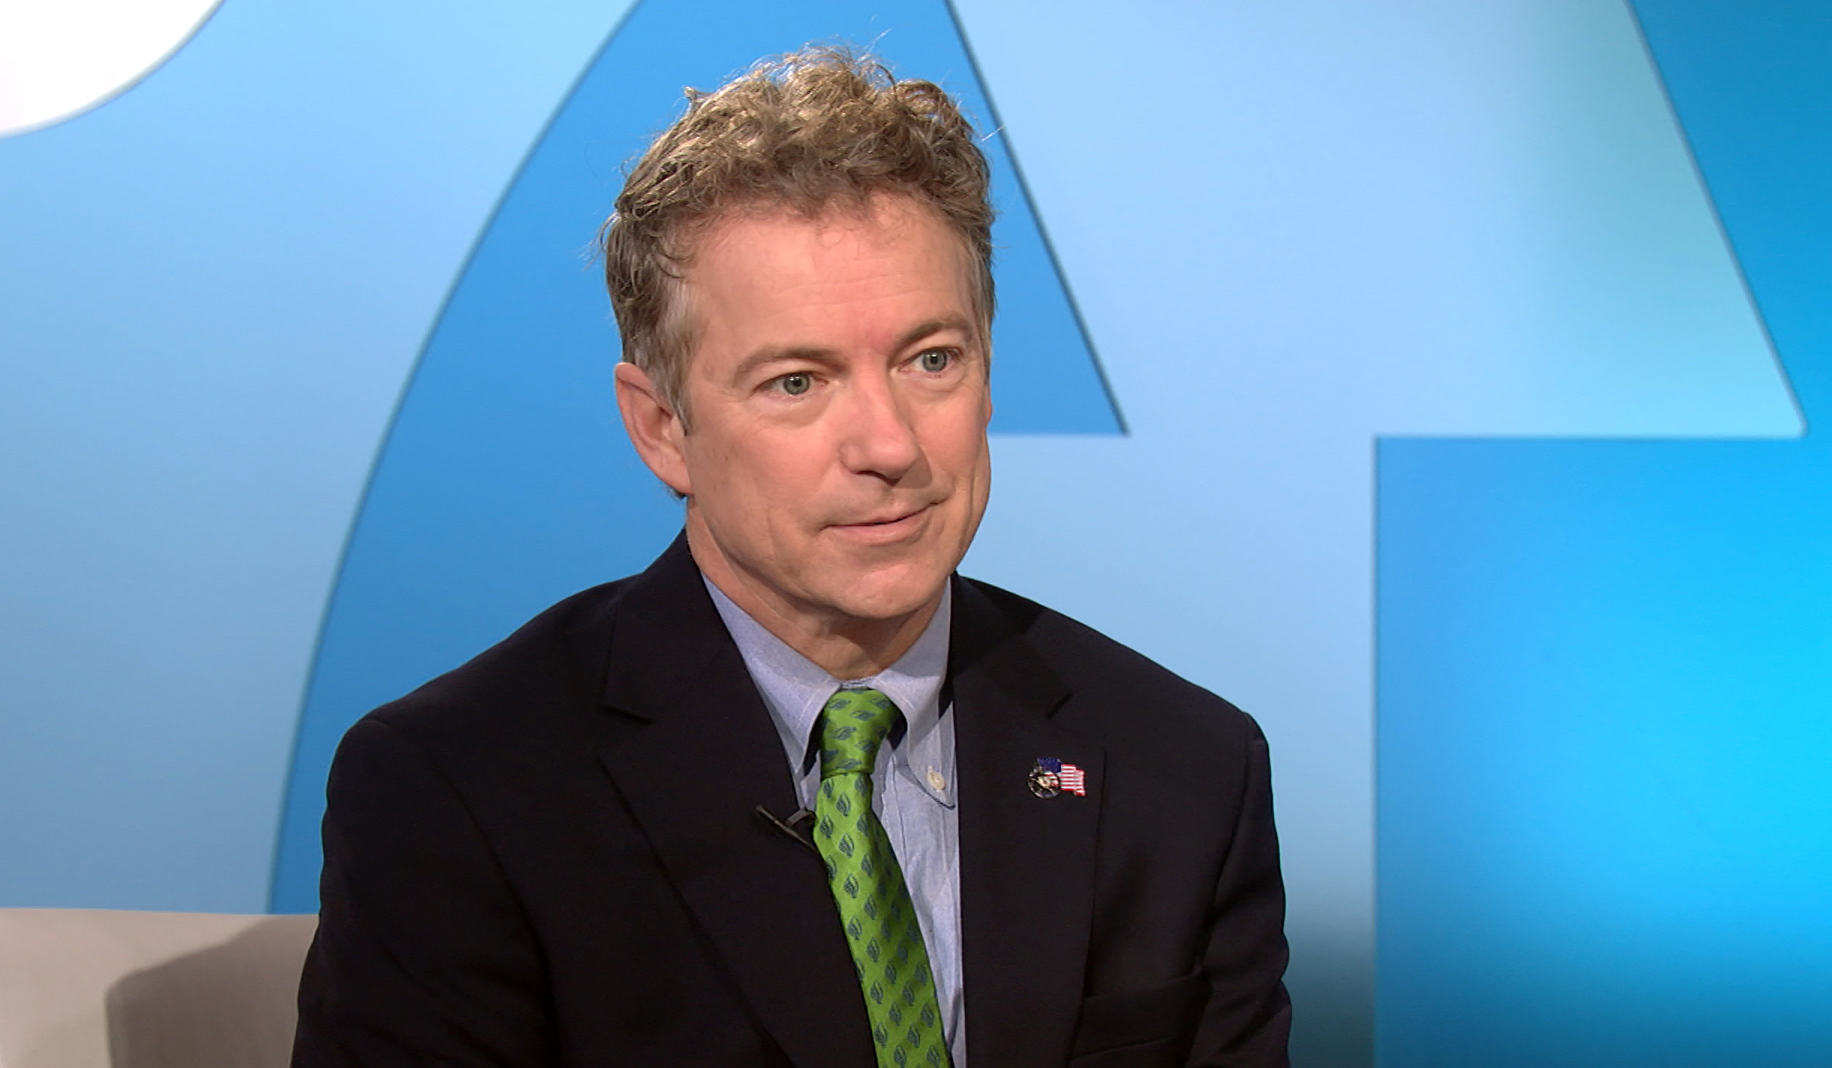 Rand Paul tells Gwen Ifill he has hidden advantage in Iowa ground game